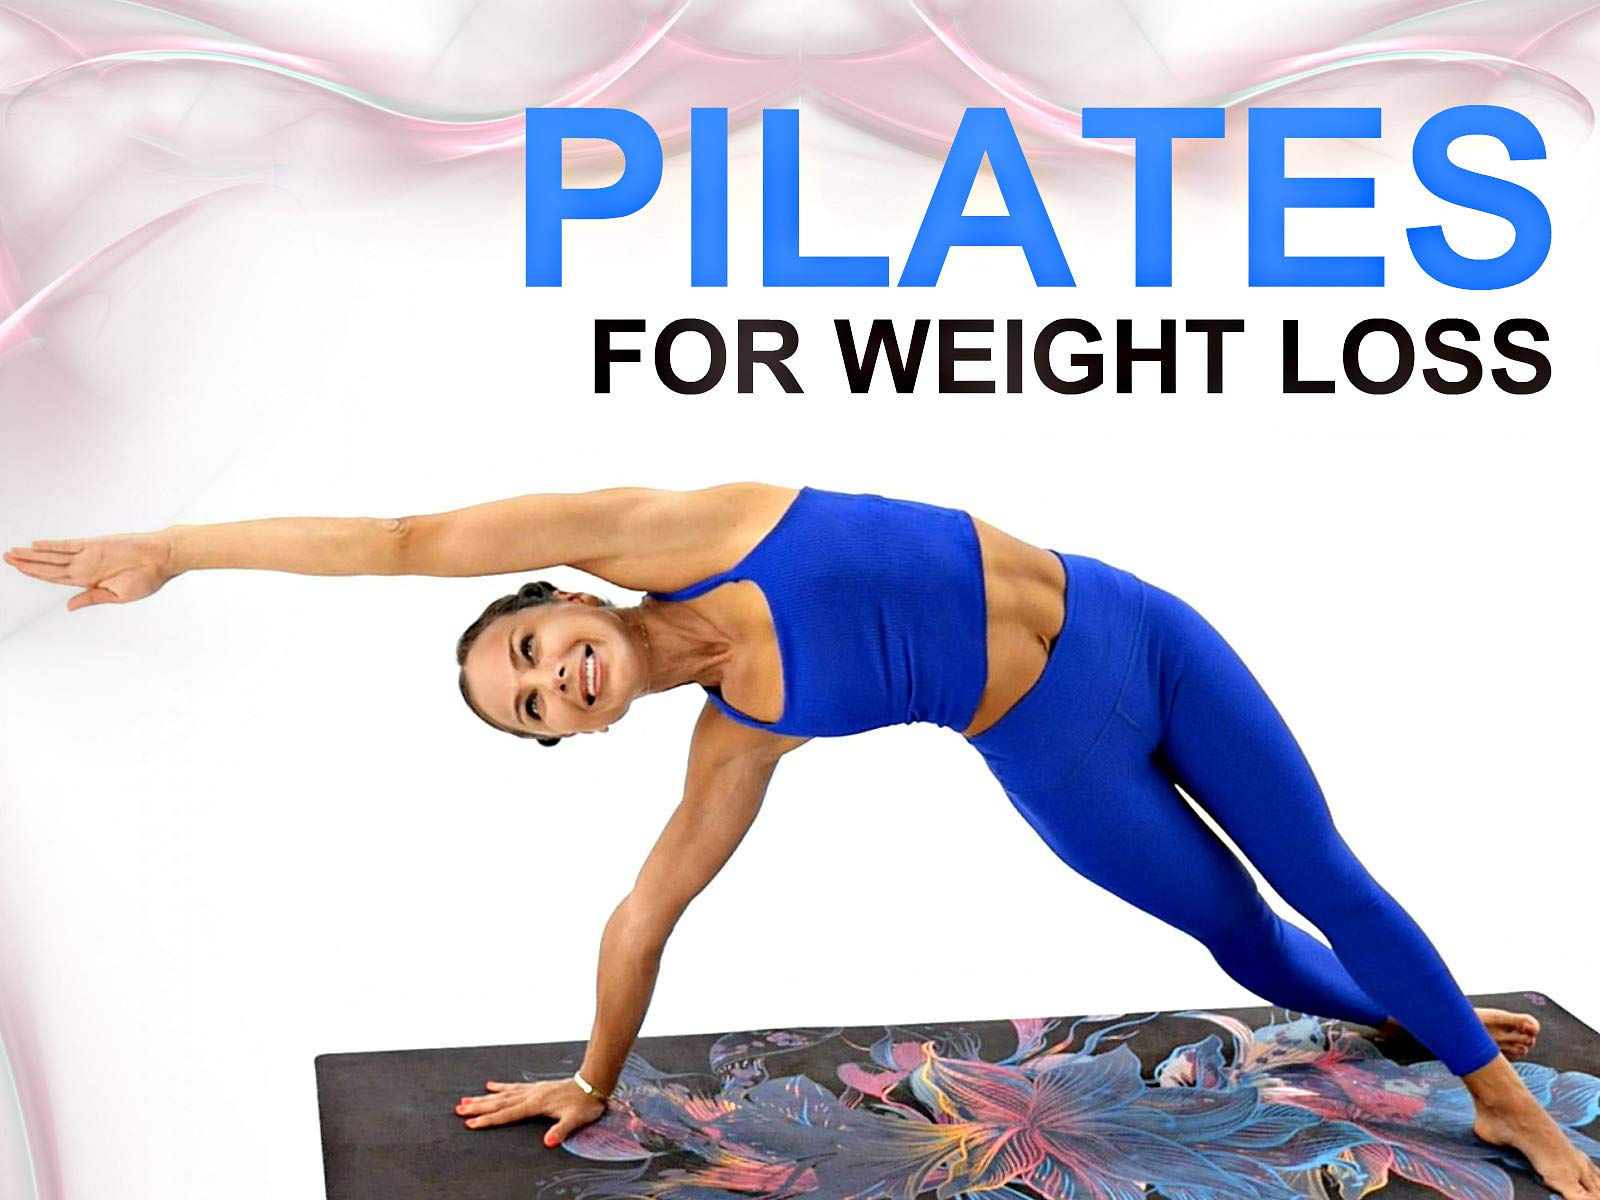 Pilates For Weight Loss on Amazon Prime Video UK